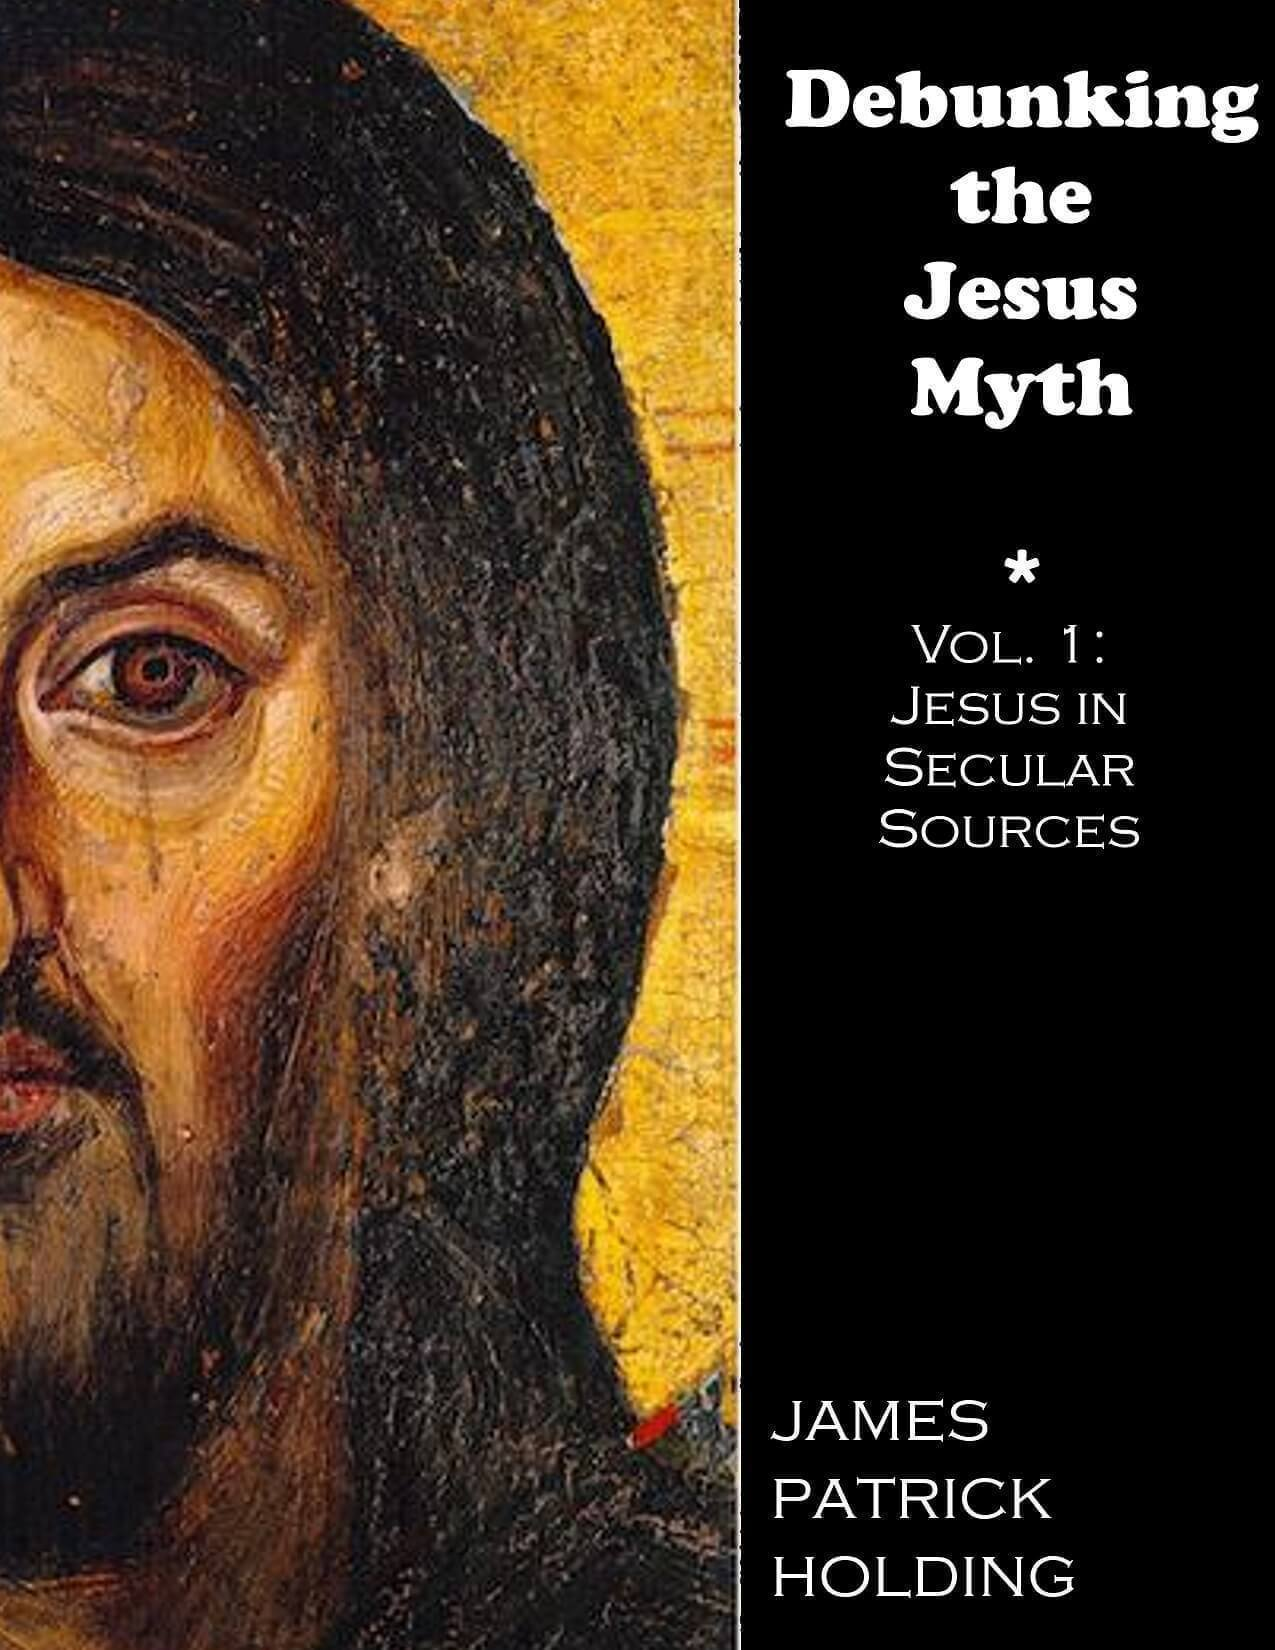 Debunking the Jesus Myth Part 1: the Pagan Copycat Theory - James Patrick Holding